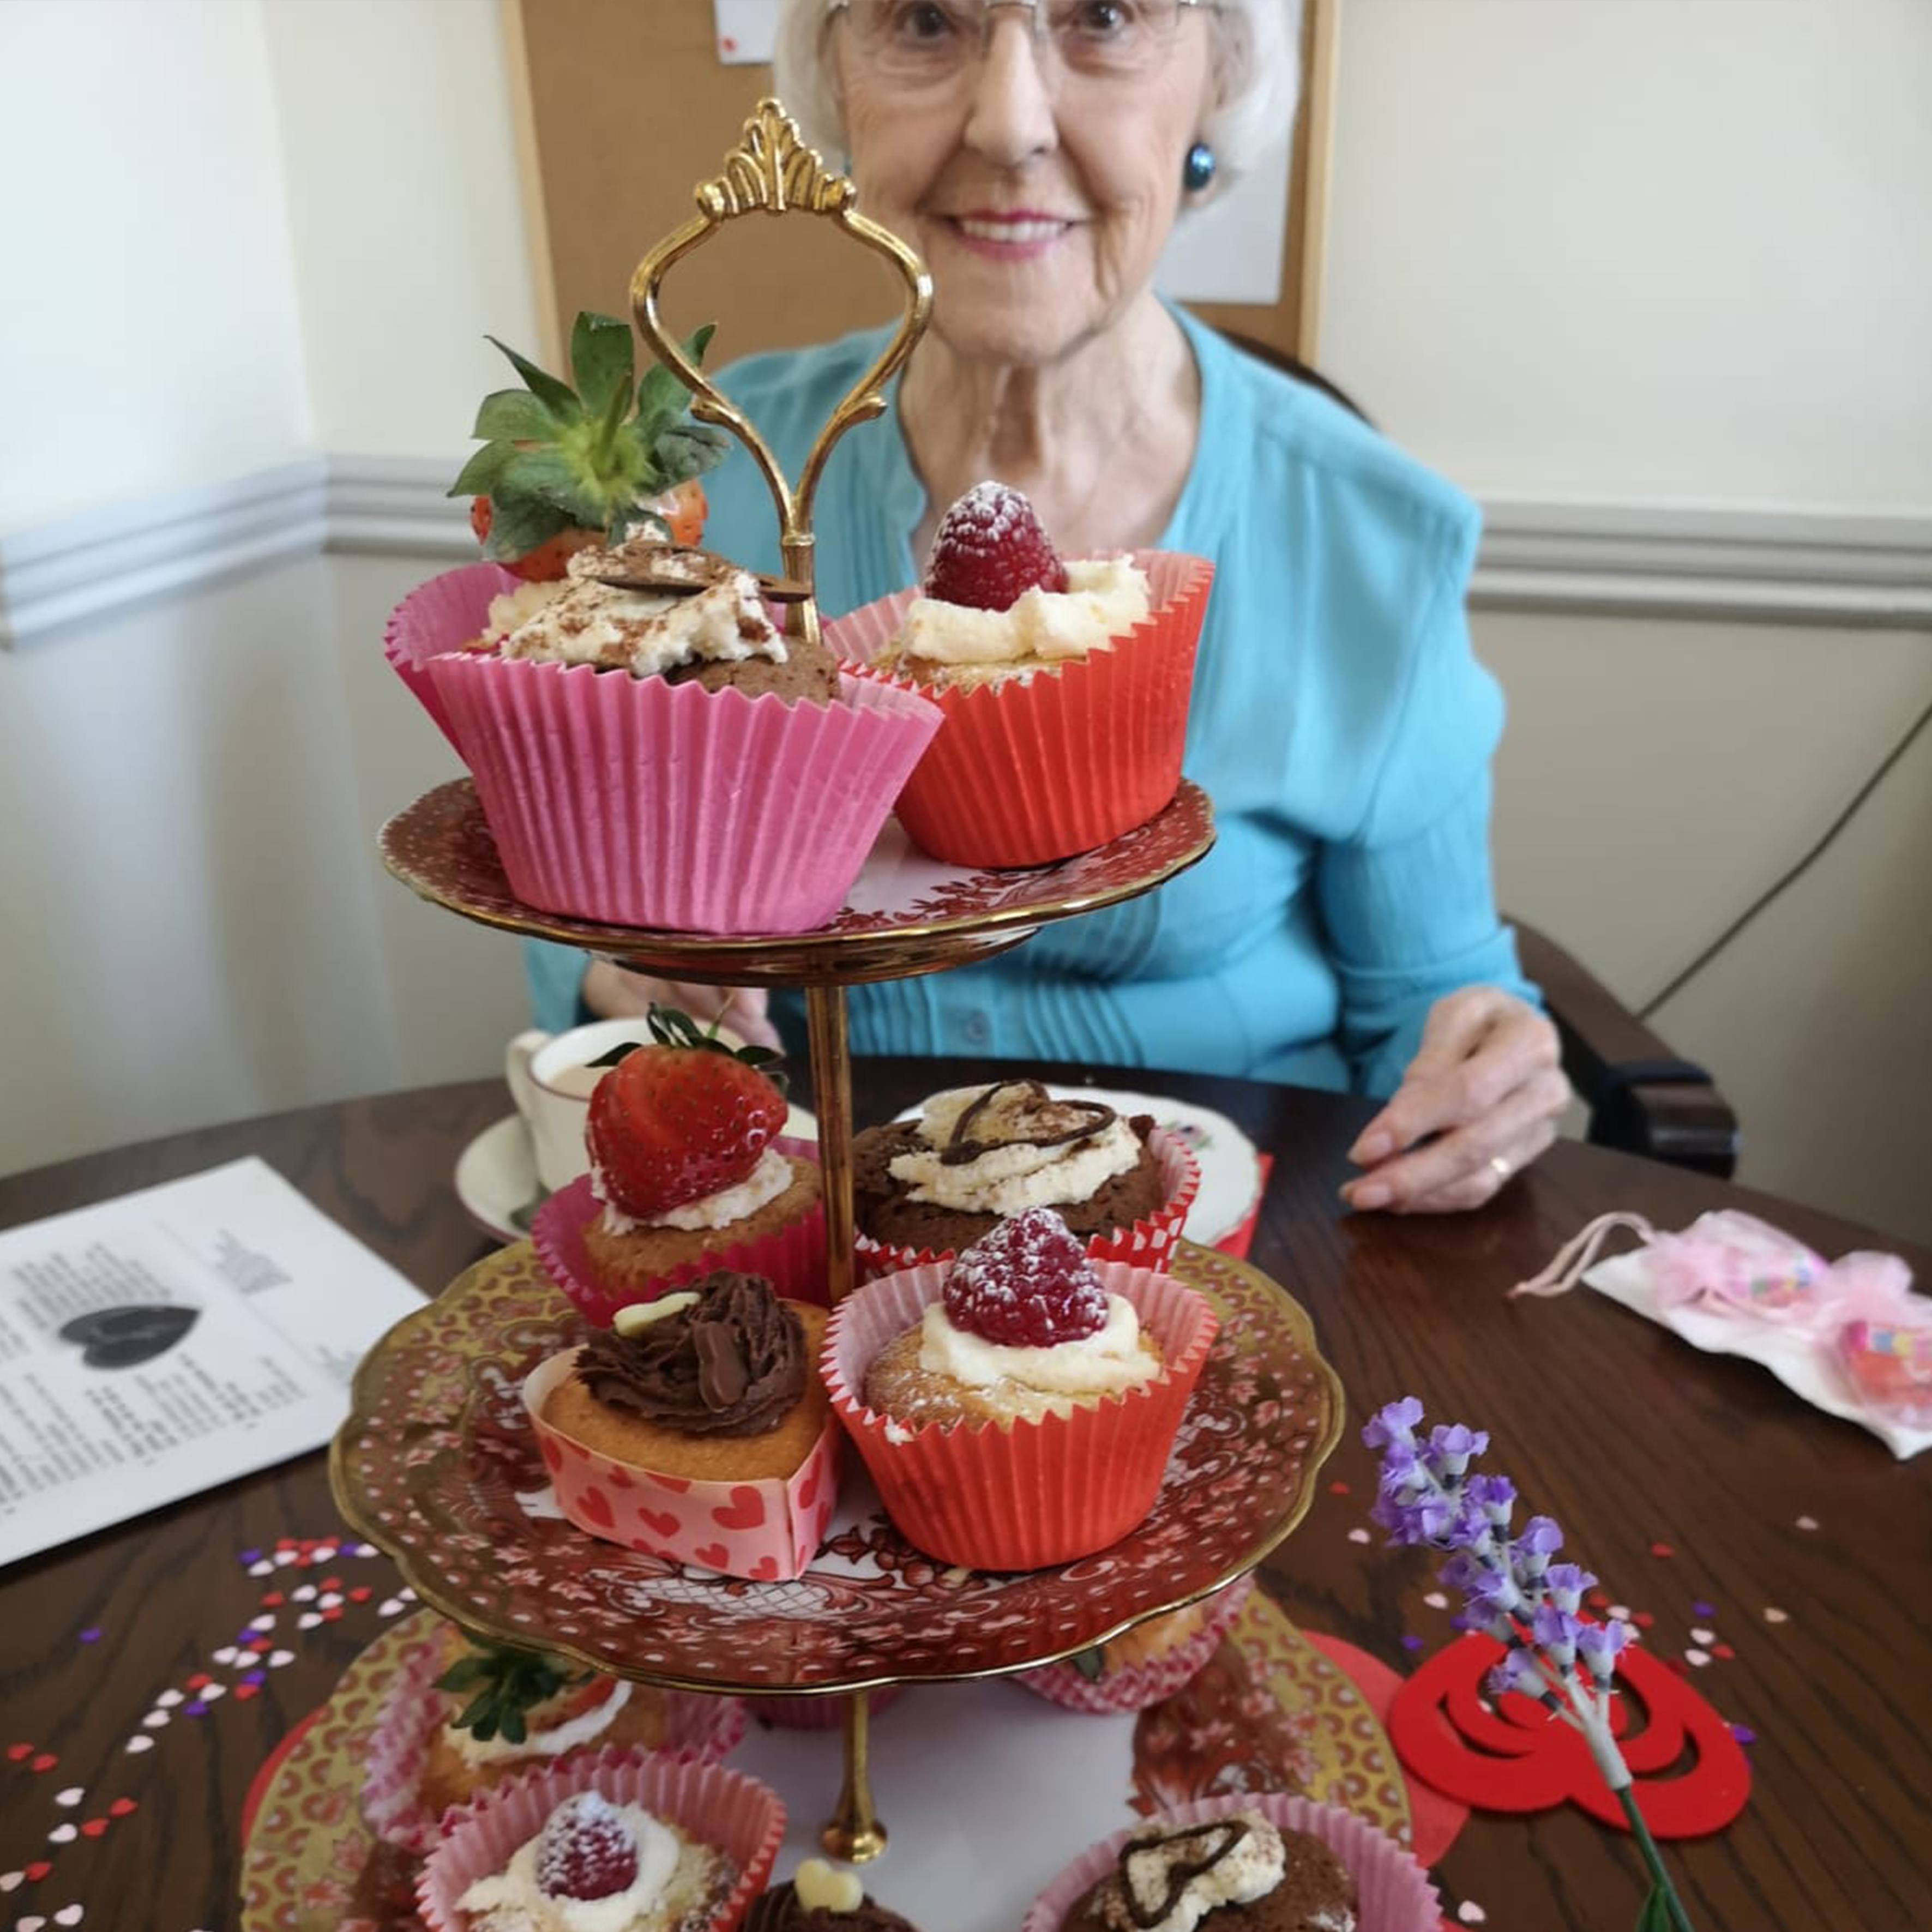 Amy with a choice of Valentine's Day cakes